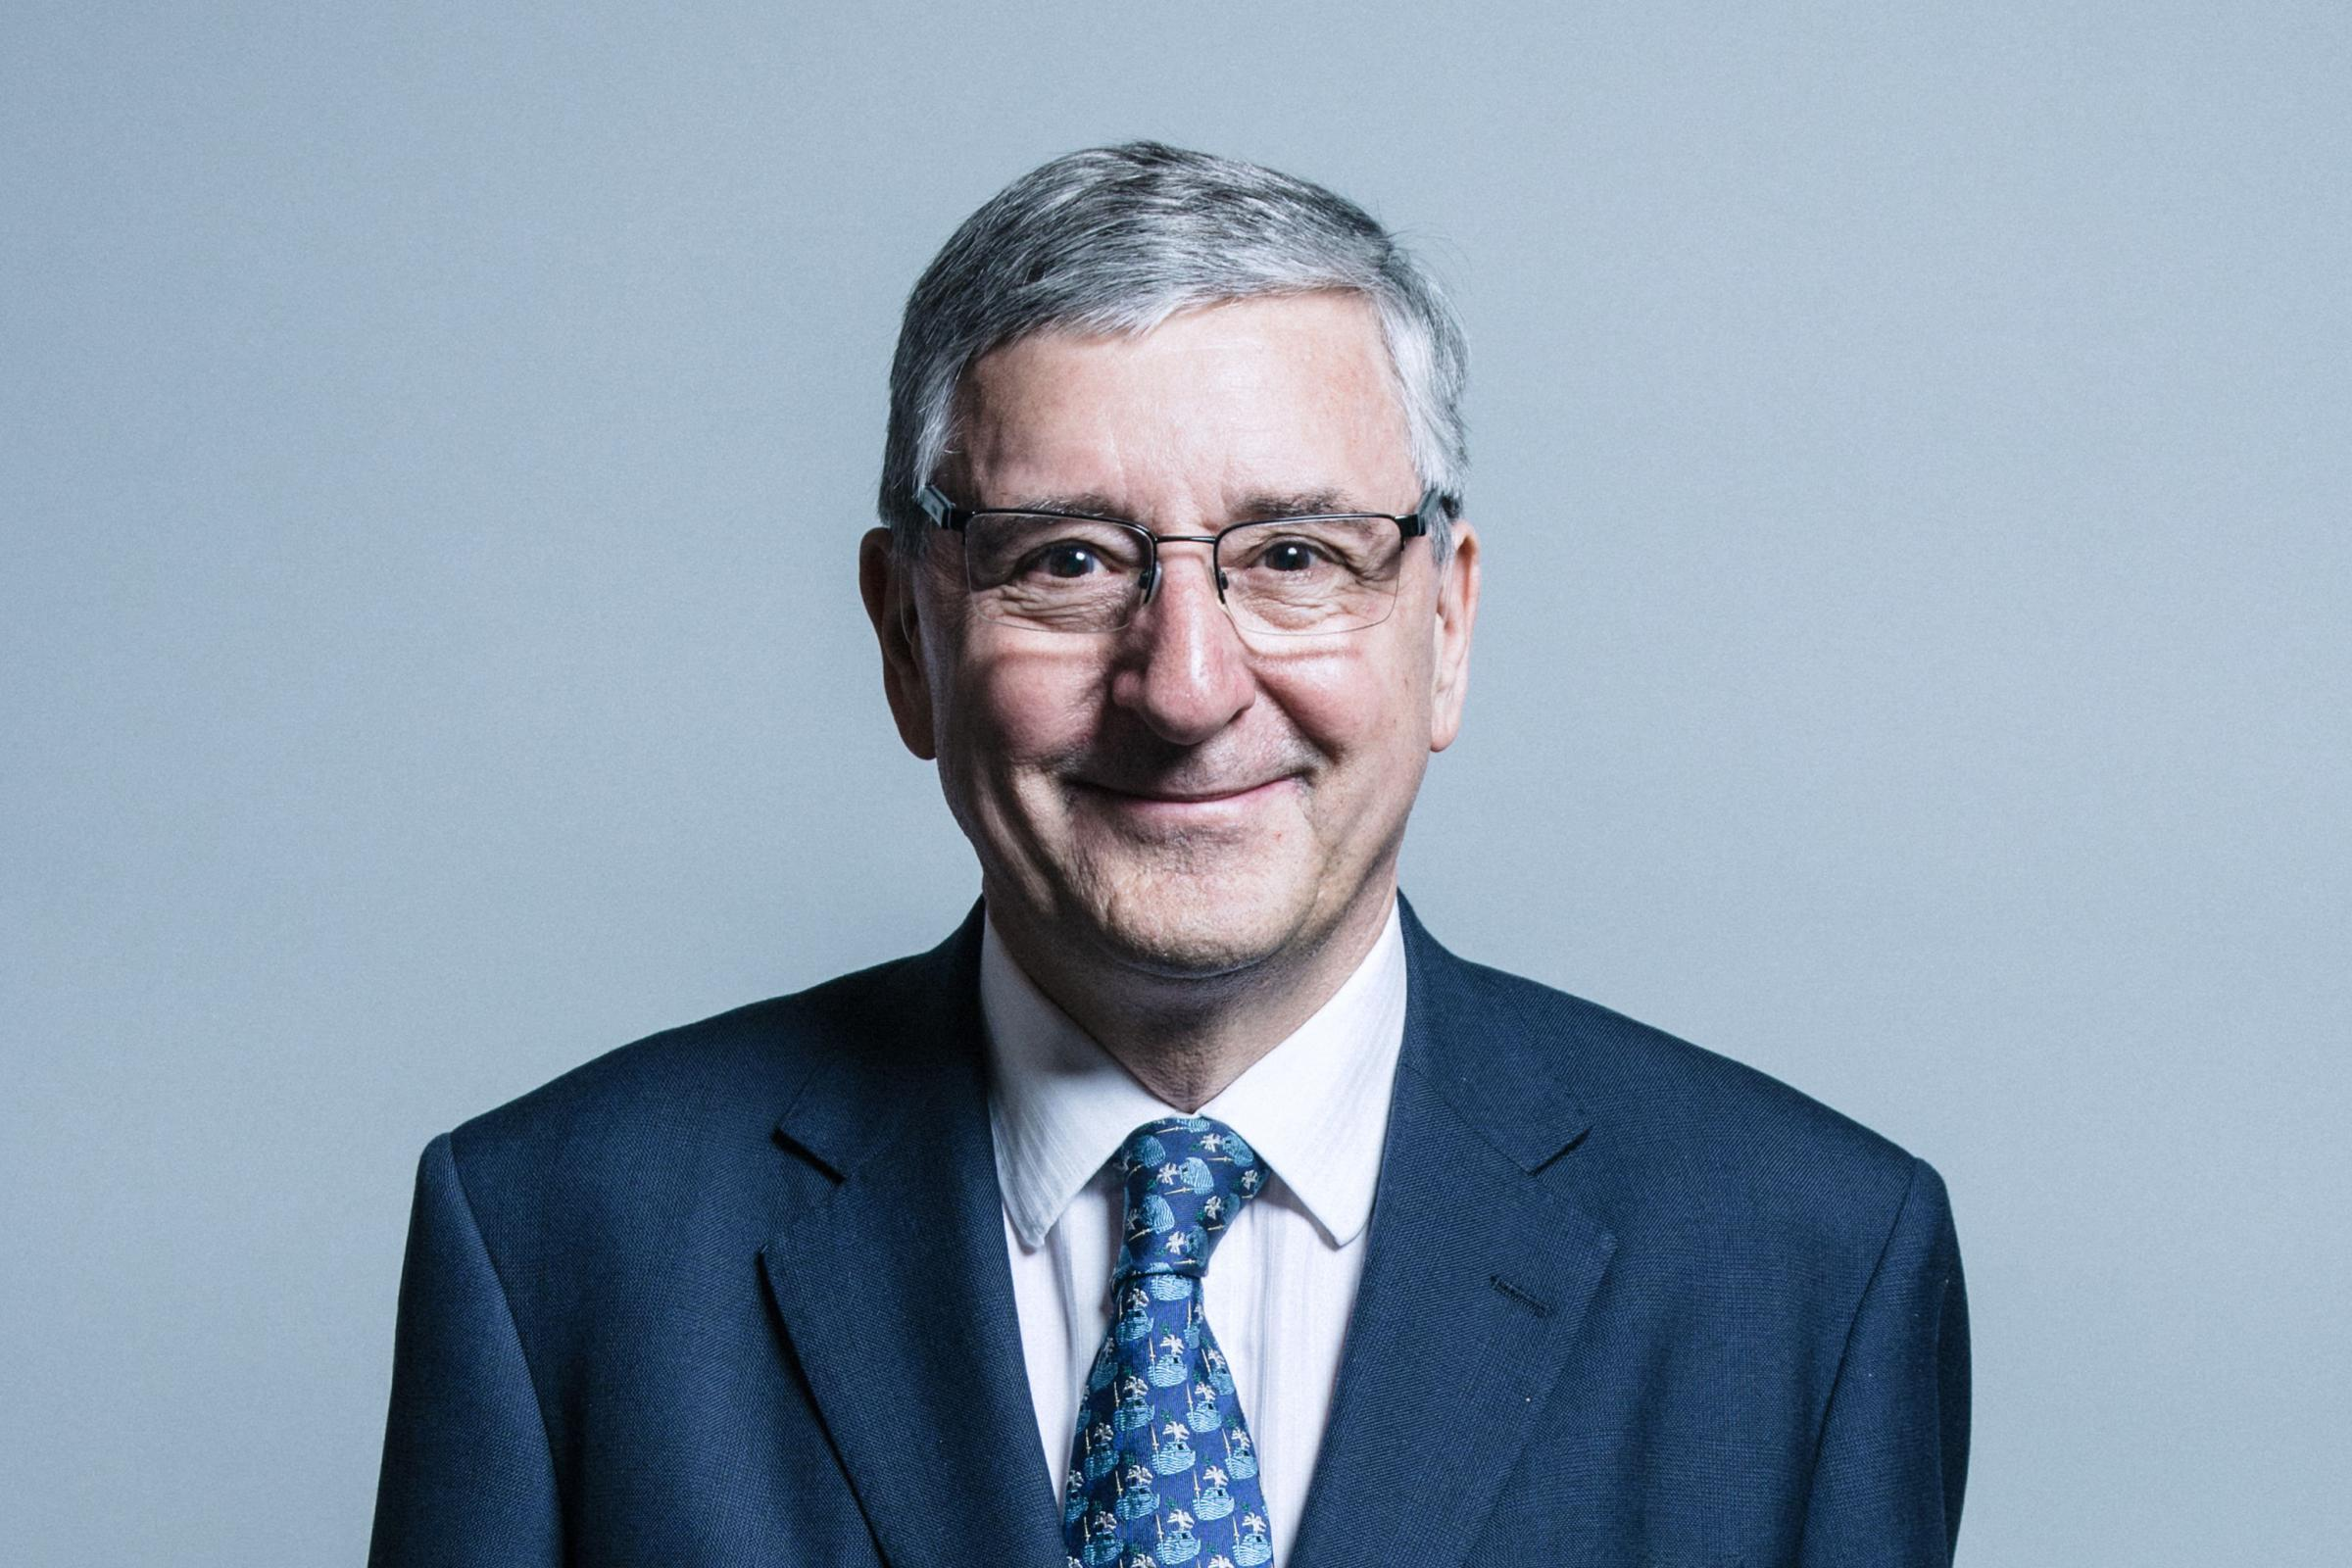 Brexit: Labour's Jim Fitzpatrick admits he didn't read the deal